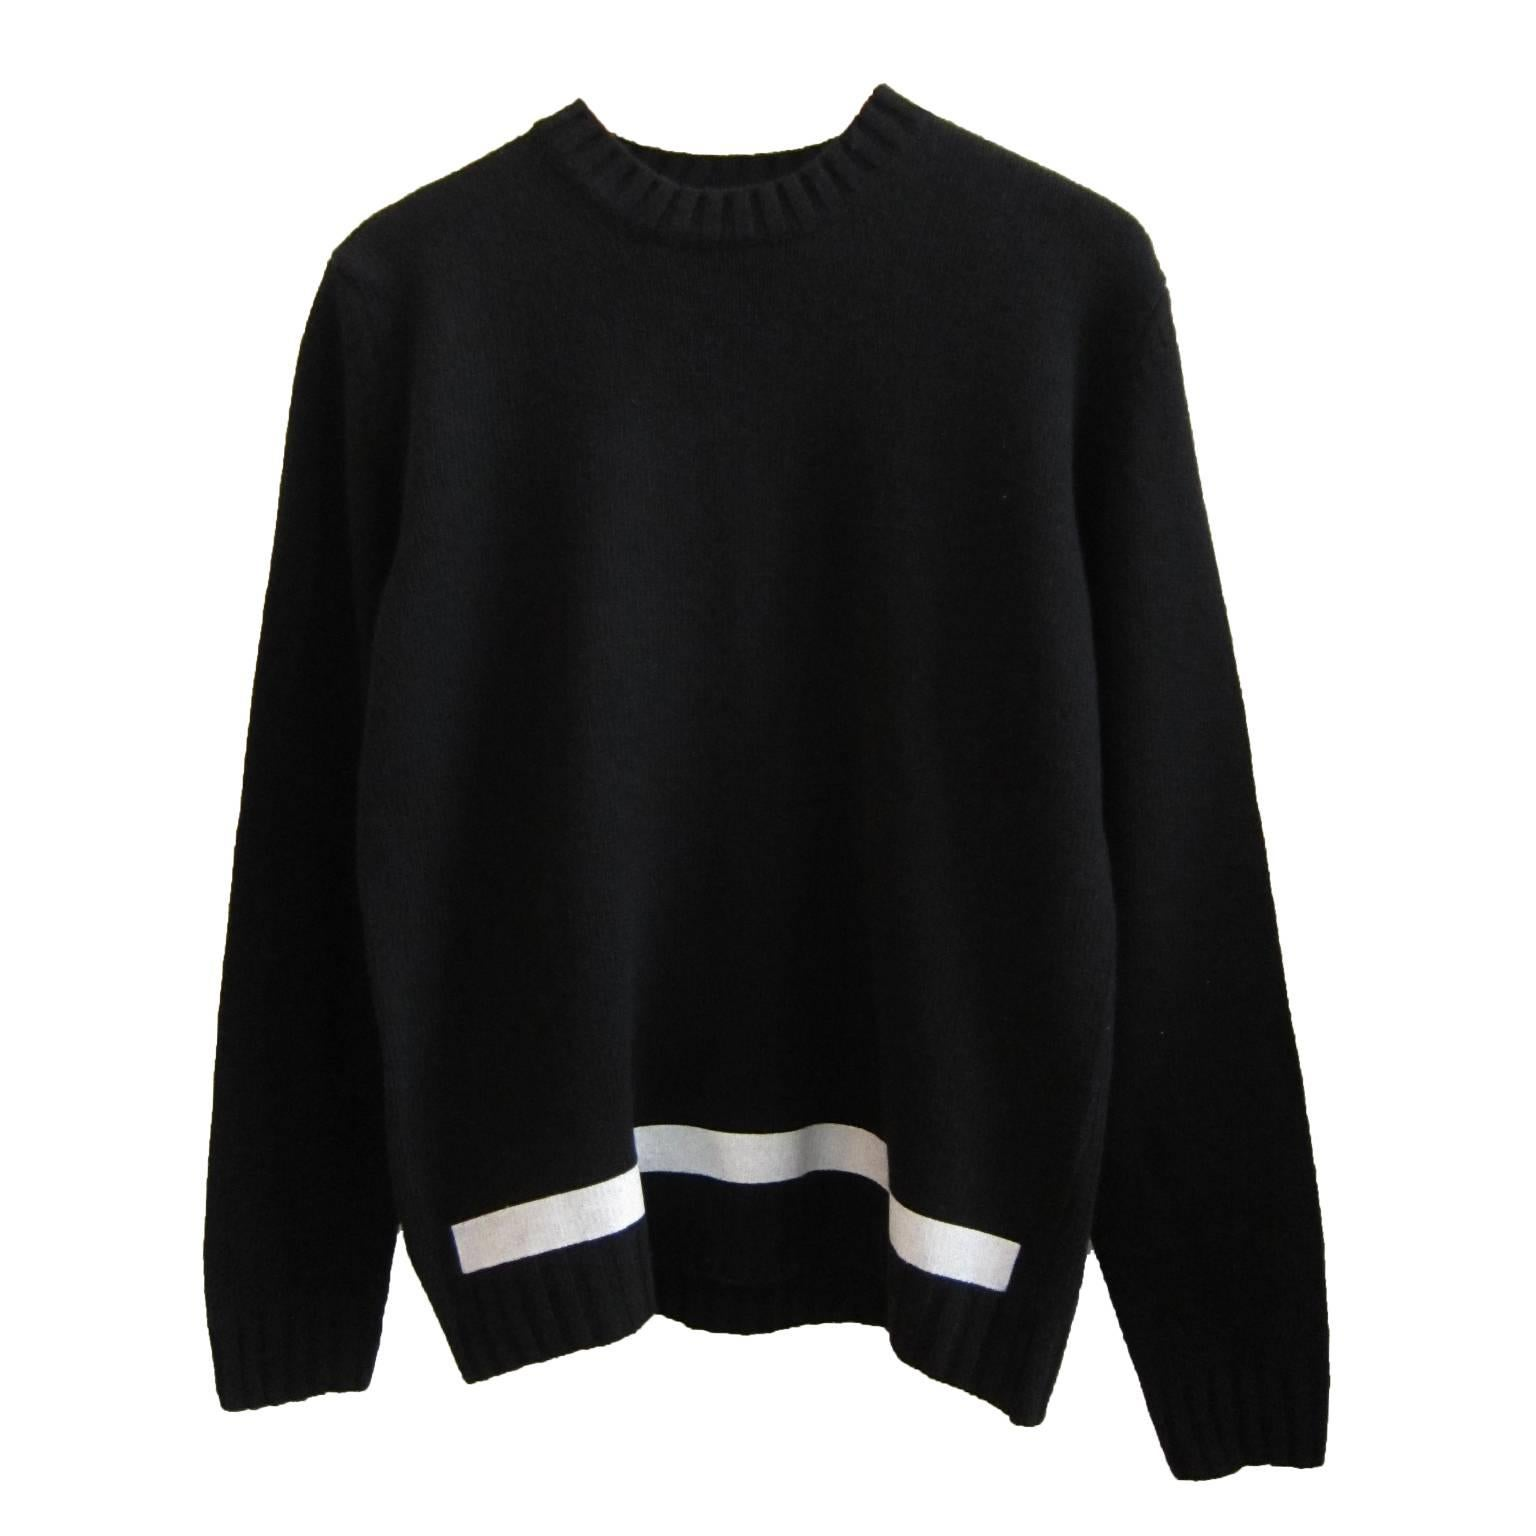 Helmut Lang Black Pullover New With Tag 1997